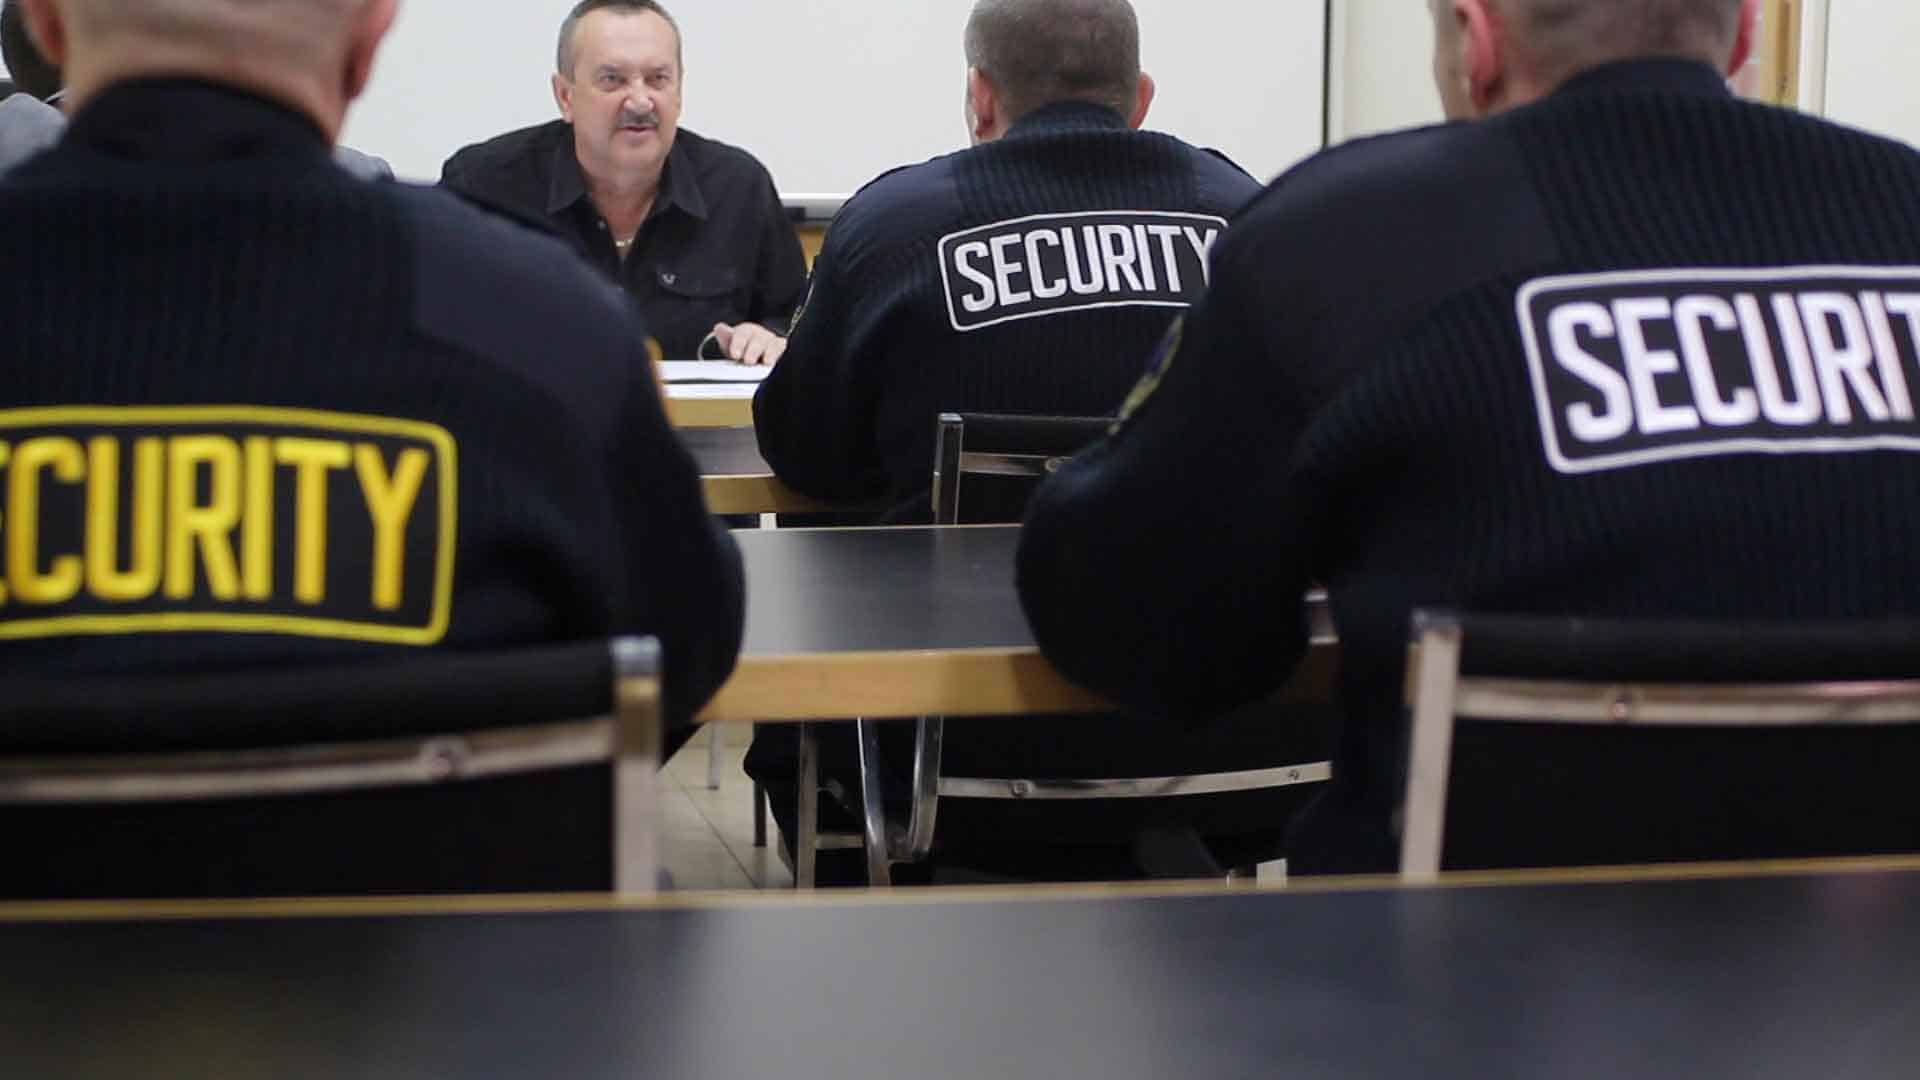 Security Guards in a Training class